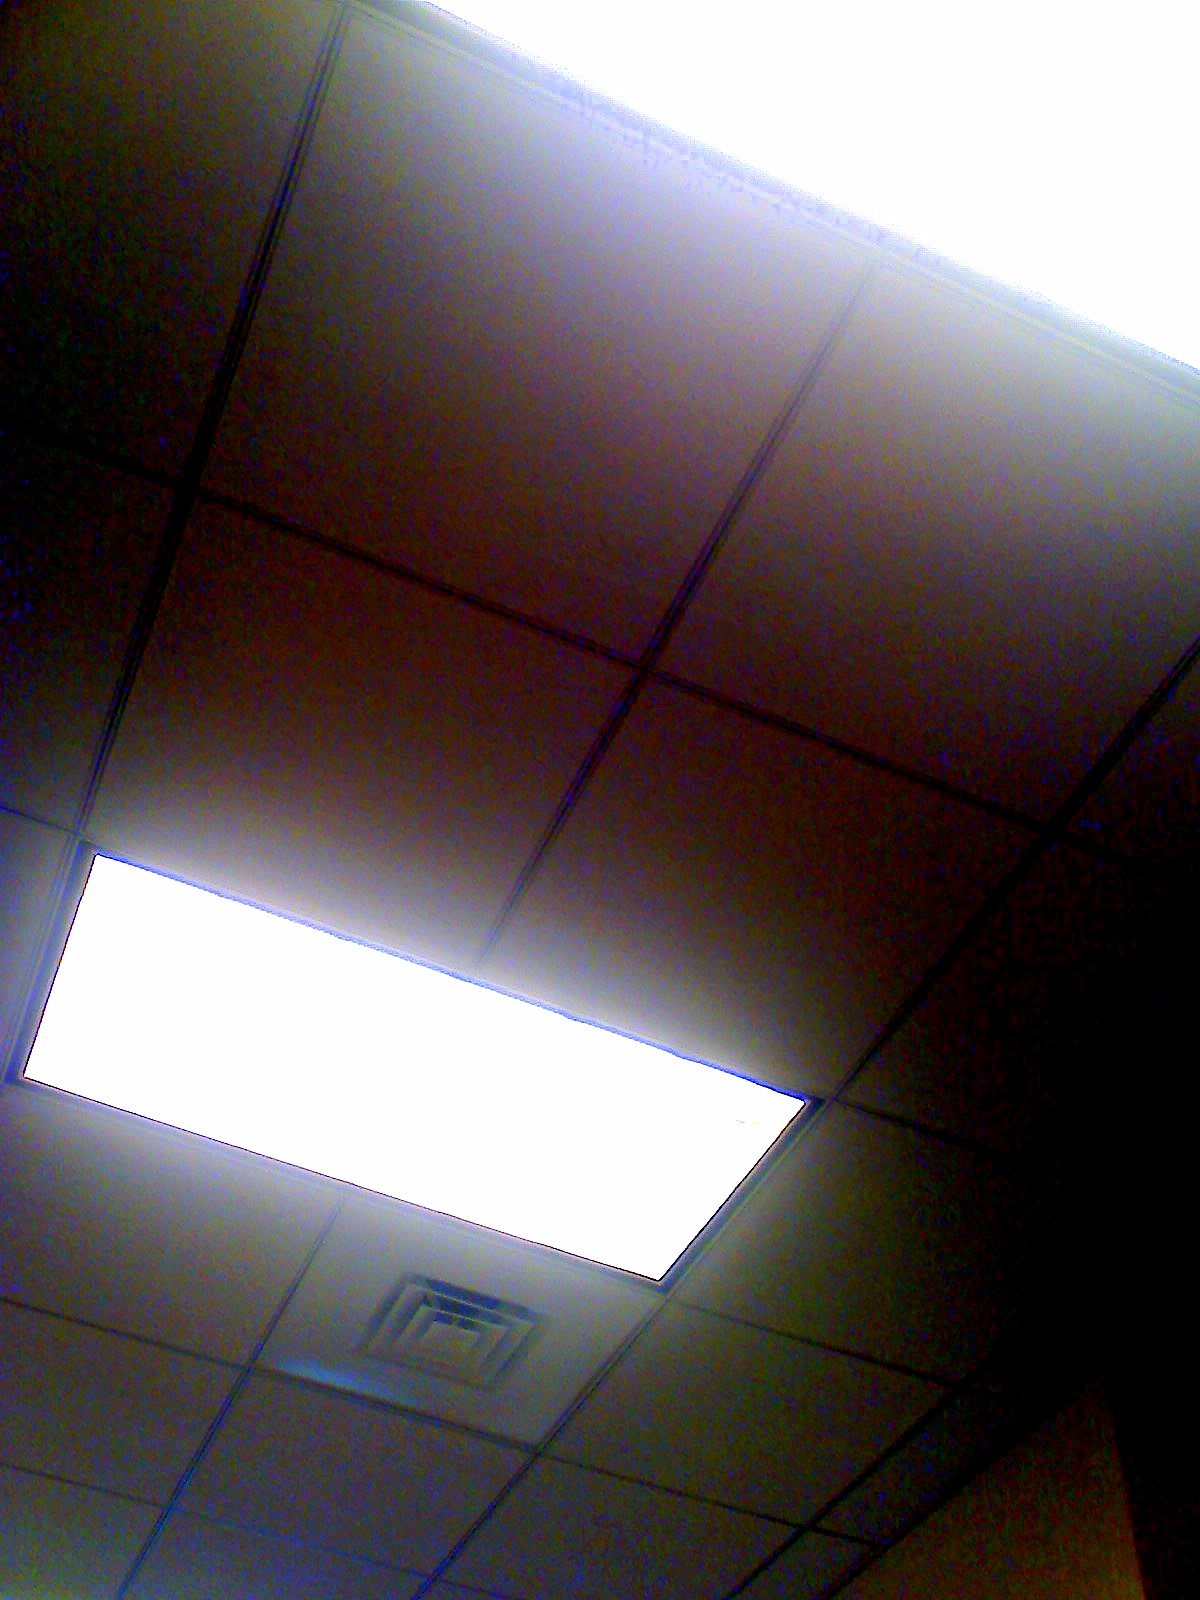 Fluorescent light panels on the ceiling of an office hallway